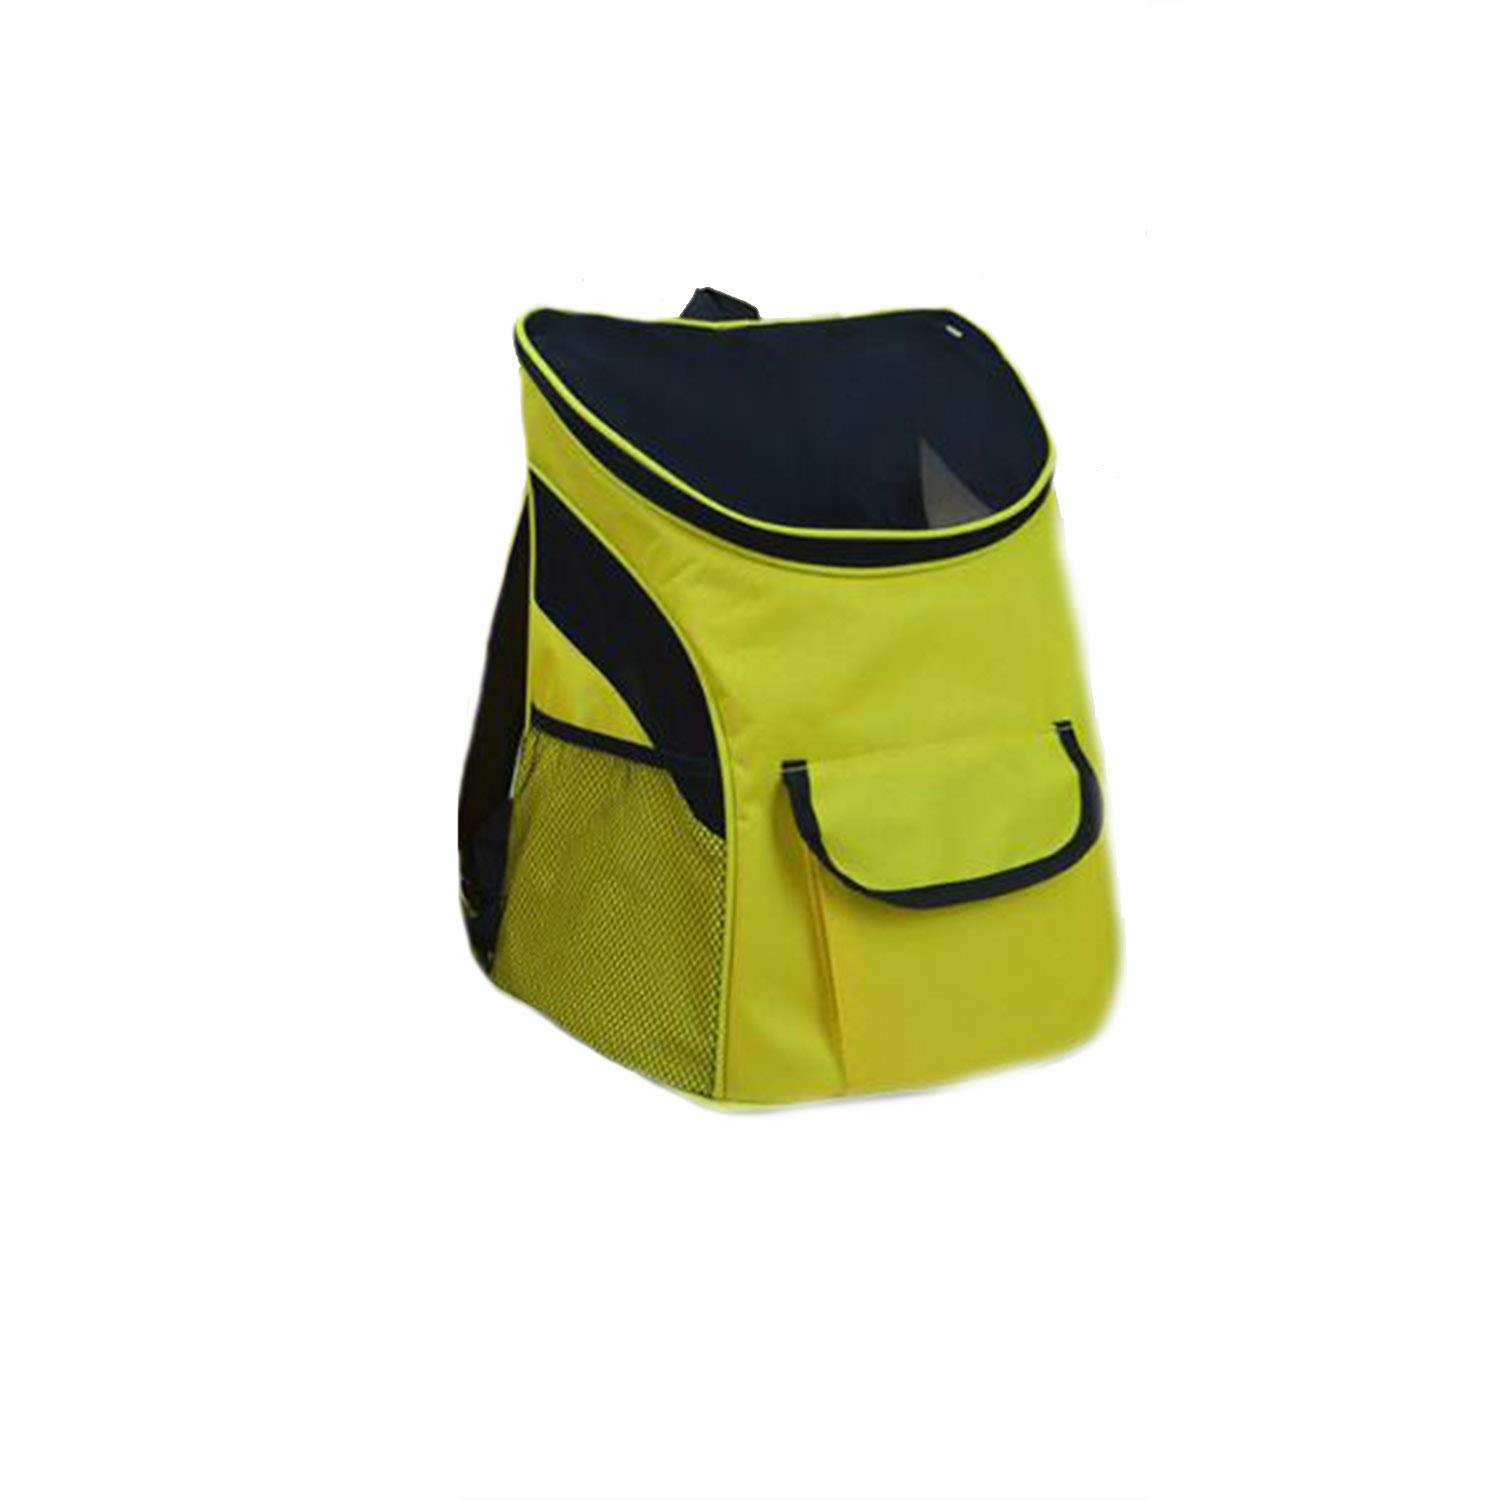 Dog Backpacks Pet Backpack Cat Bag Dog Bag Out Pack Travel Portable Backpack Schoolbag Breathable Mesh Cloth Outcrop Chest,Yellow,L